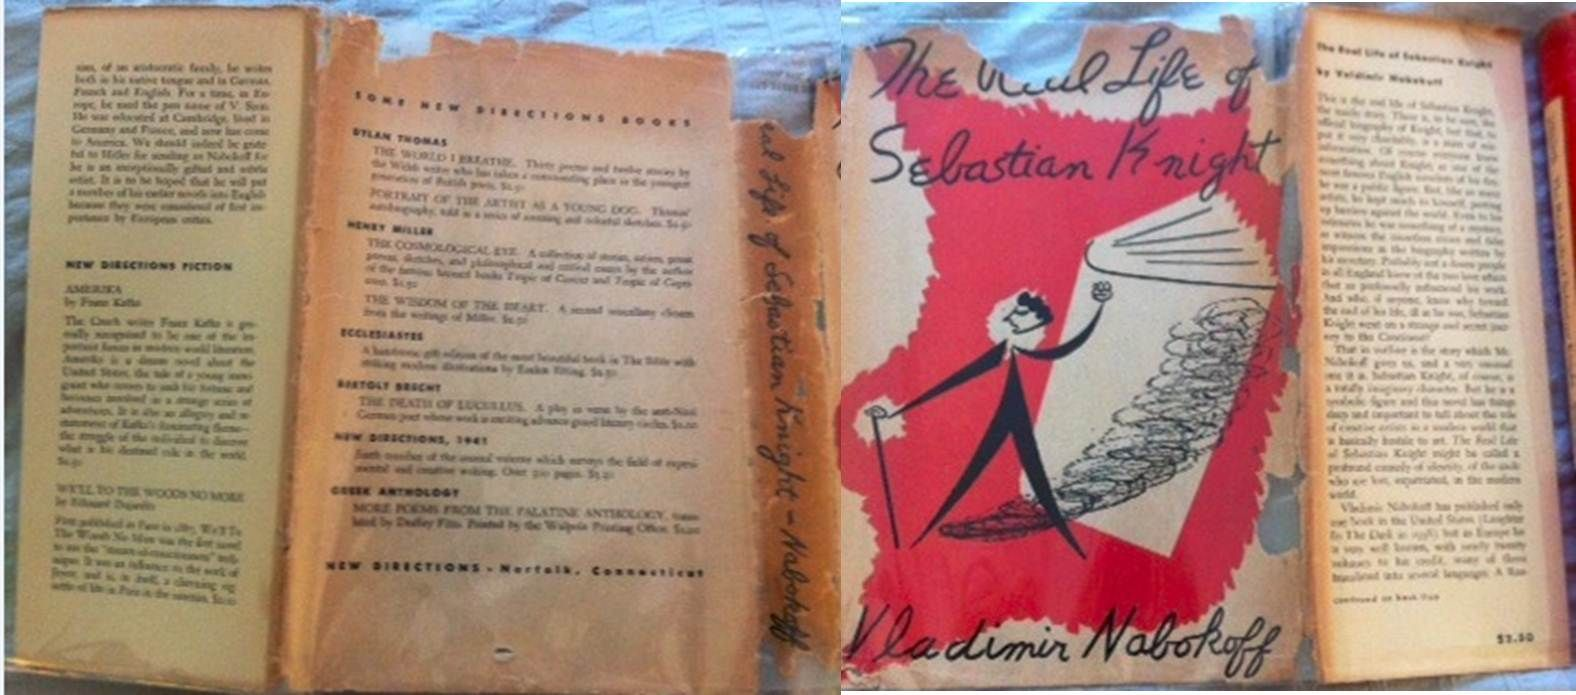 Vladimir Nabokov S Rare Book The Real Life Of Sebastian Knight Note The Misspelling Of His Name On The Spine Rare Books Books Book Cover